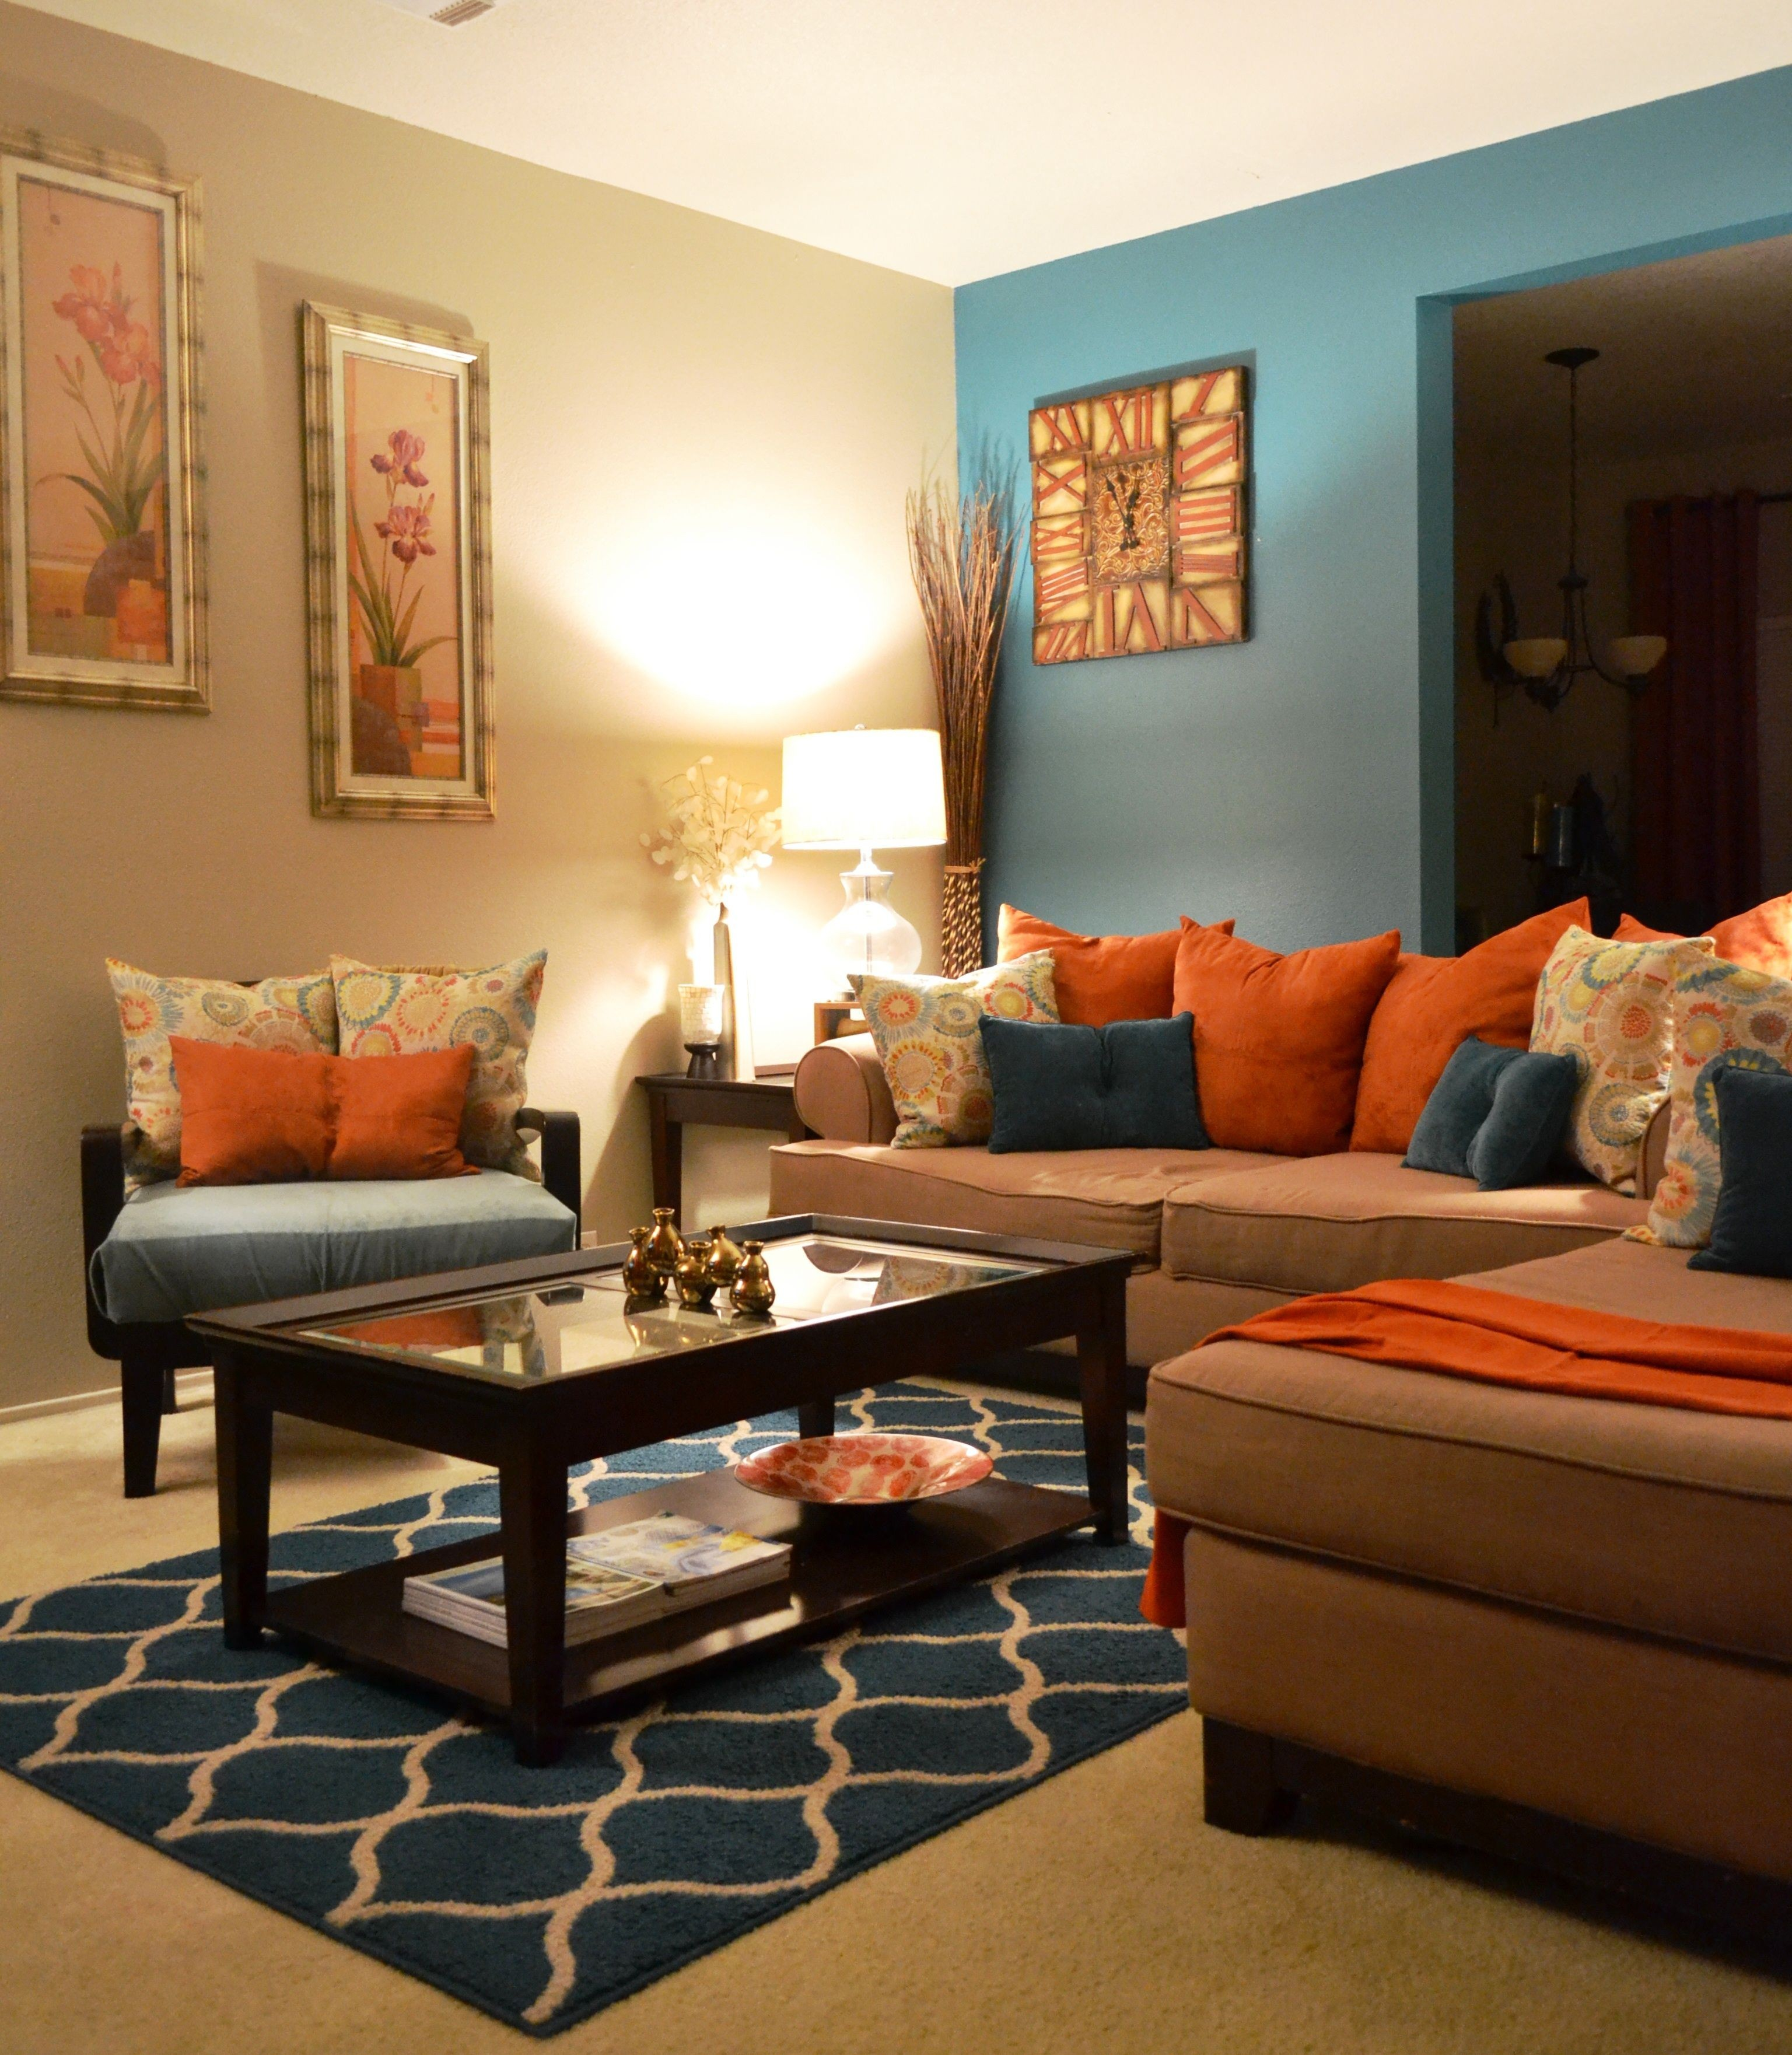 Decorating With Turquoise Accents Acnn Decor